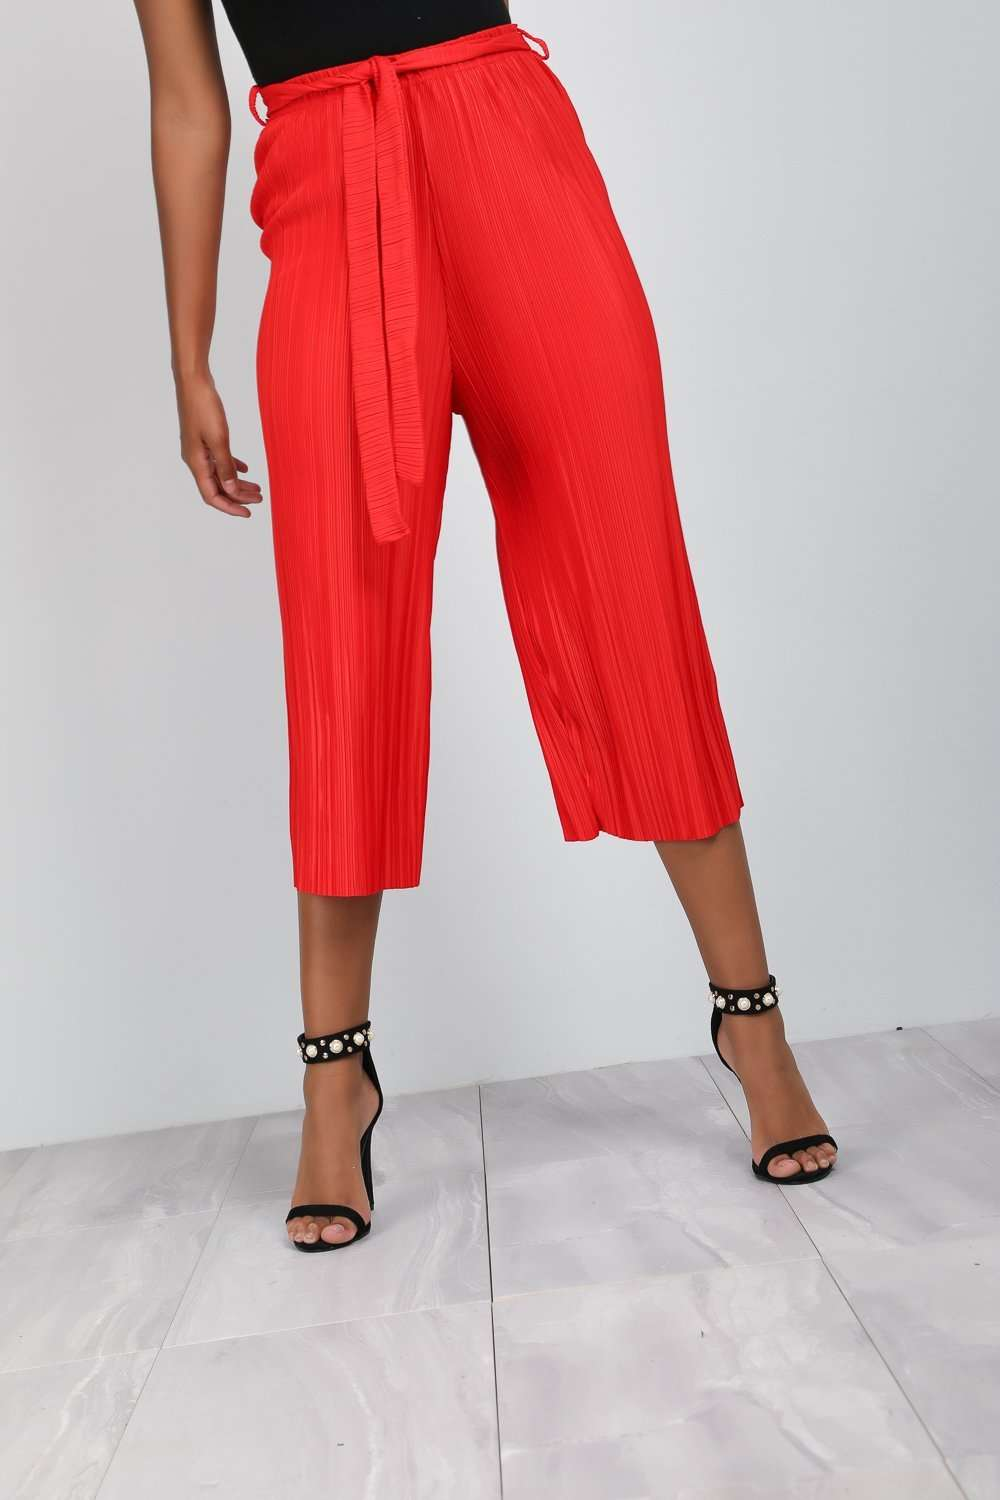 Amari Pink High Waist Cropped Pleated Culottes - bejealous-com